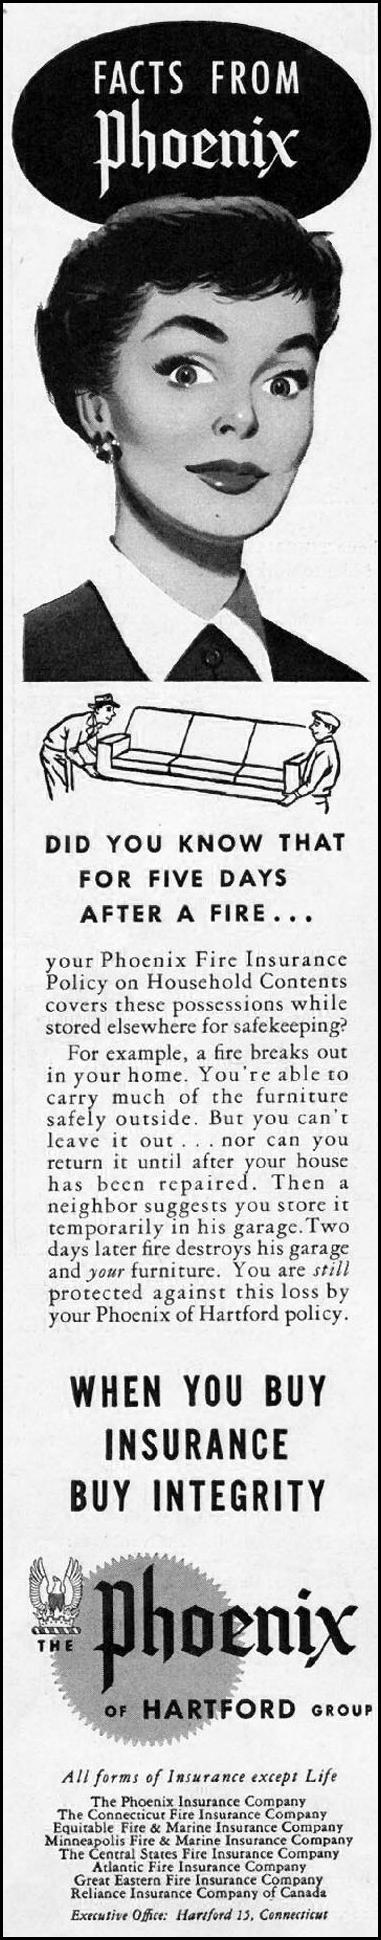 FIRE INSURANCE SATURDAY EVENING POST 06/04/1955 p. 124